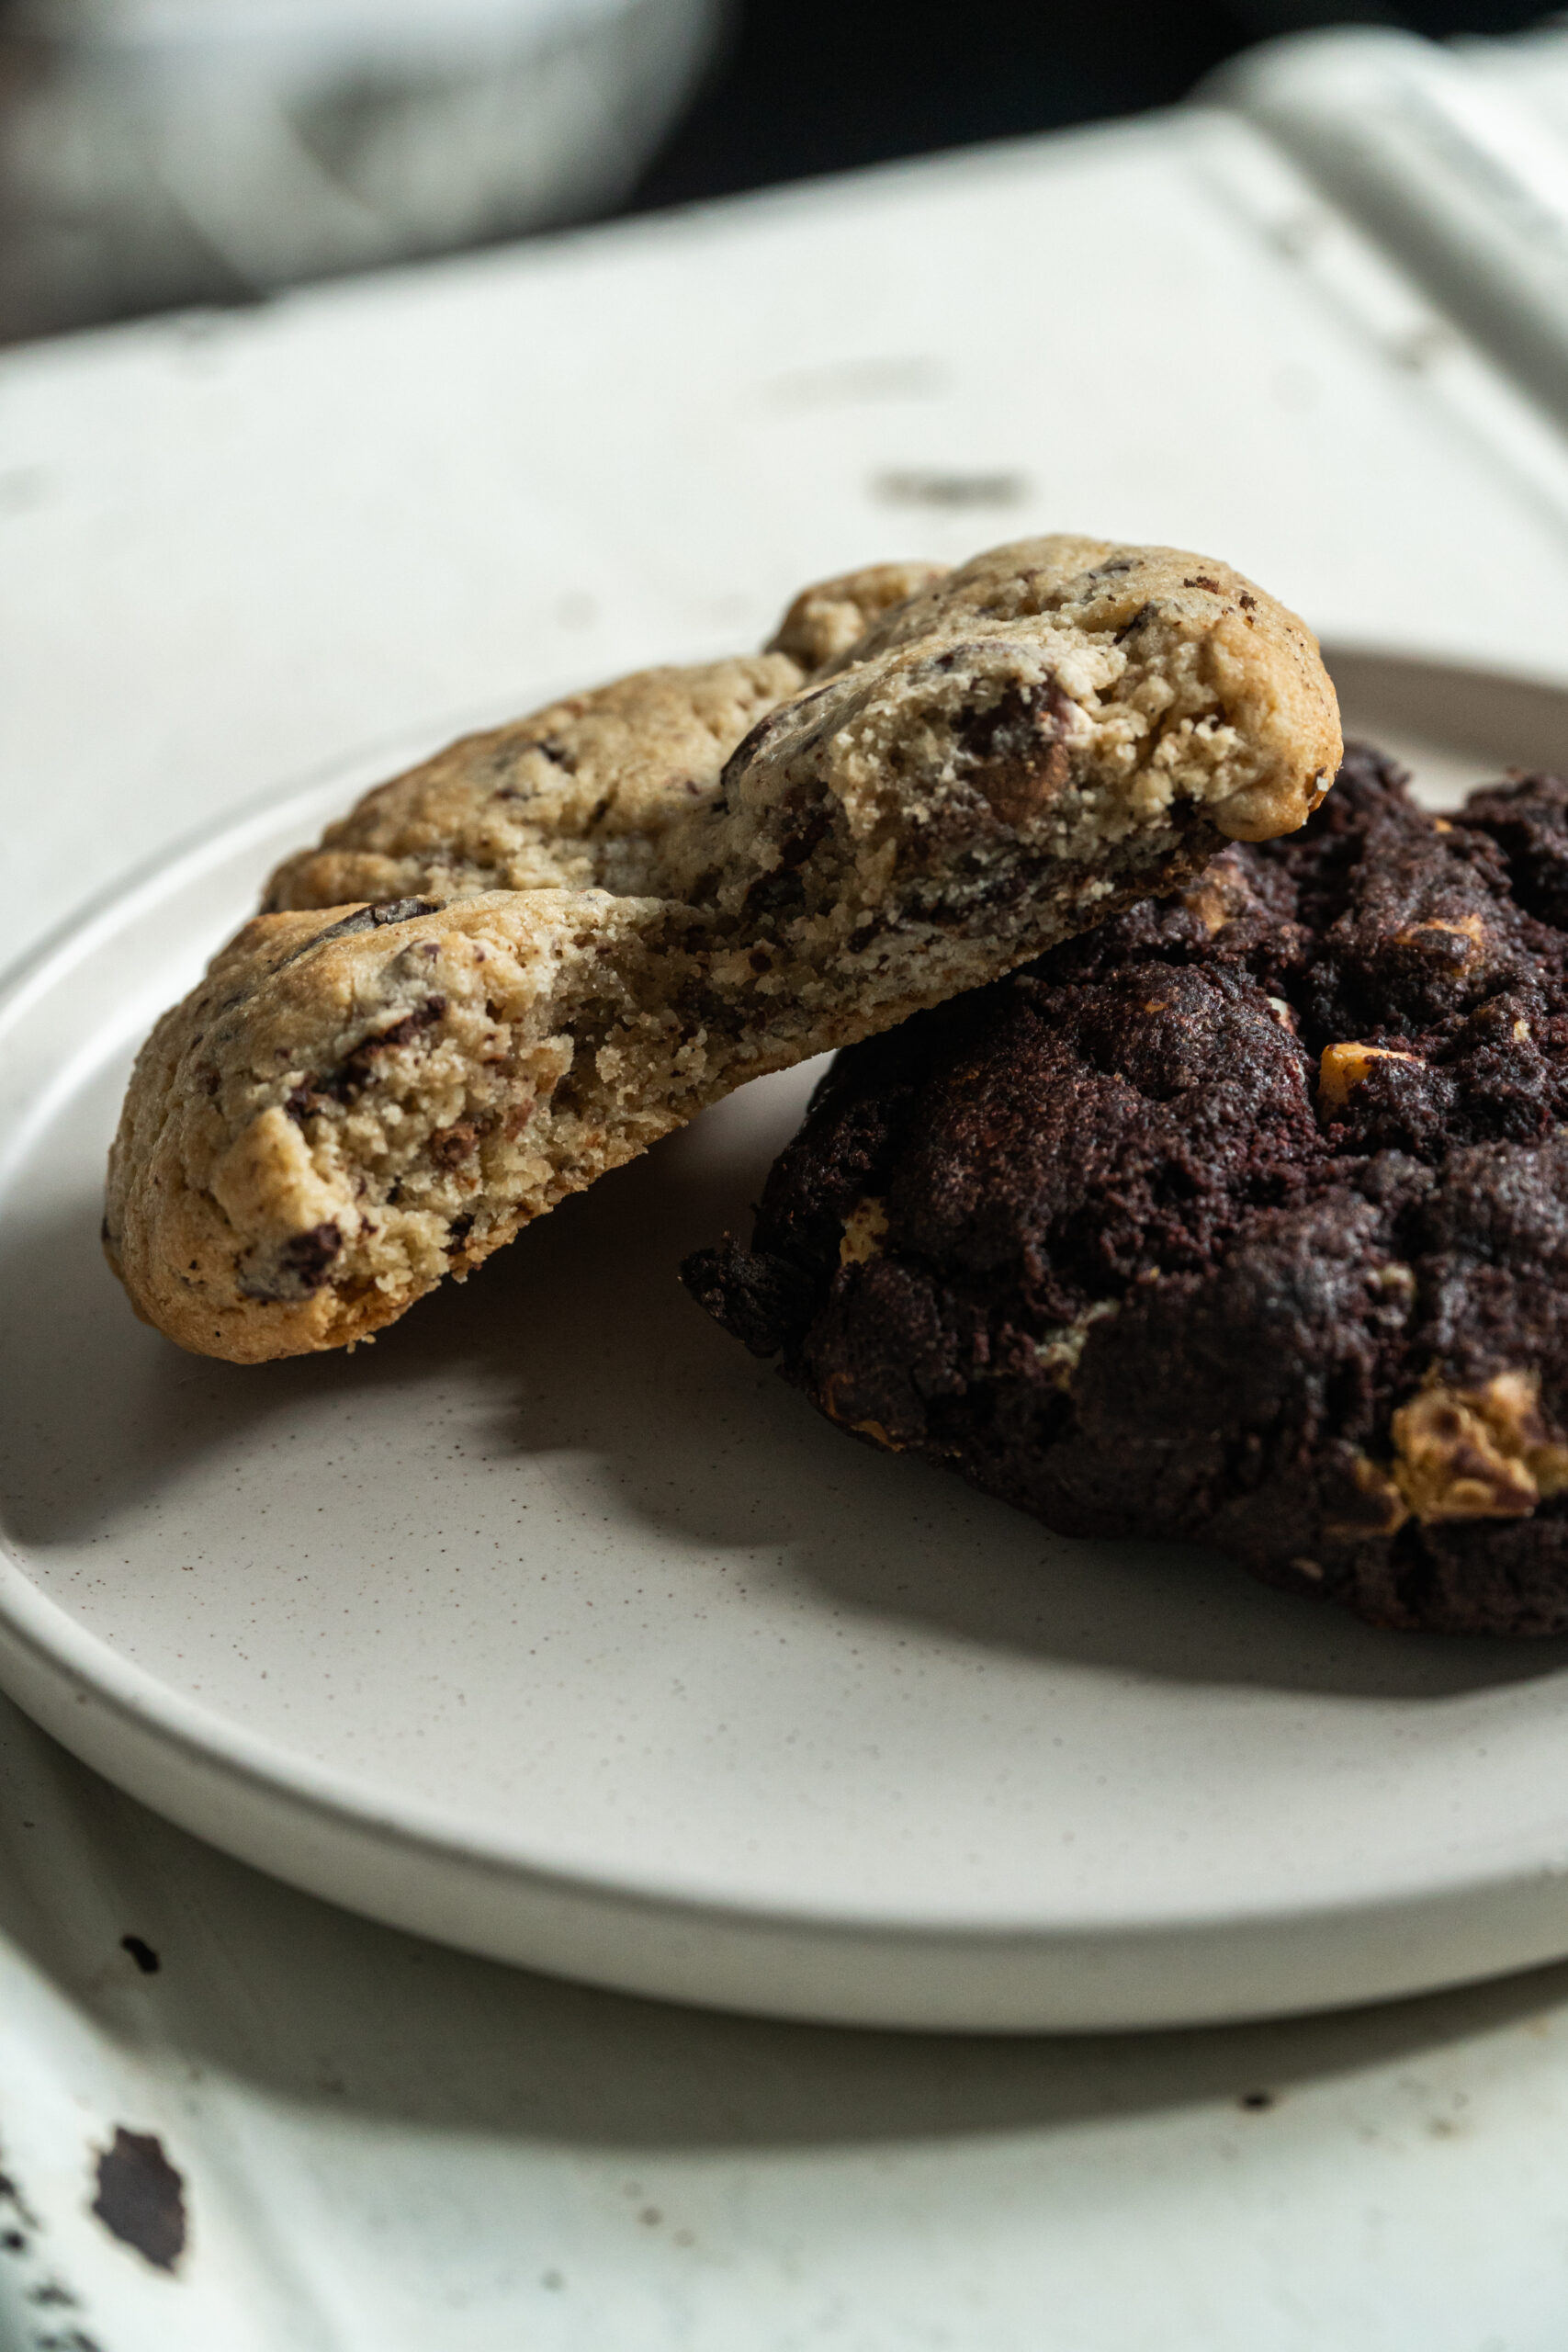 2 chunky nyc cookies on a plate, one has a bite taken out of it